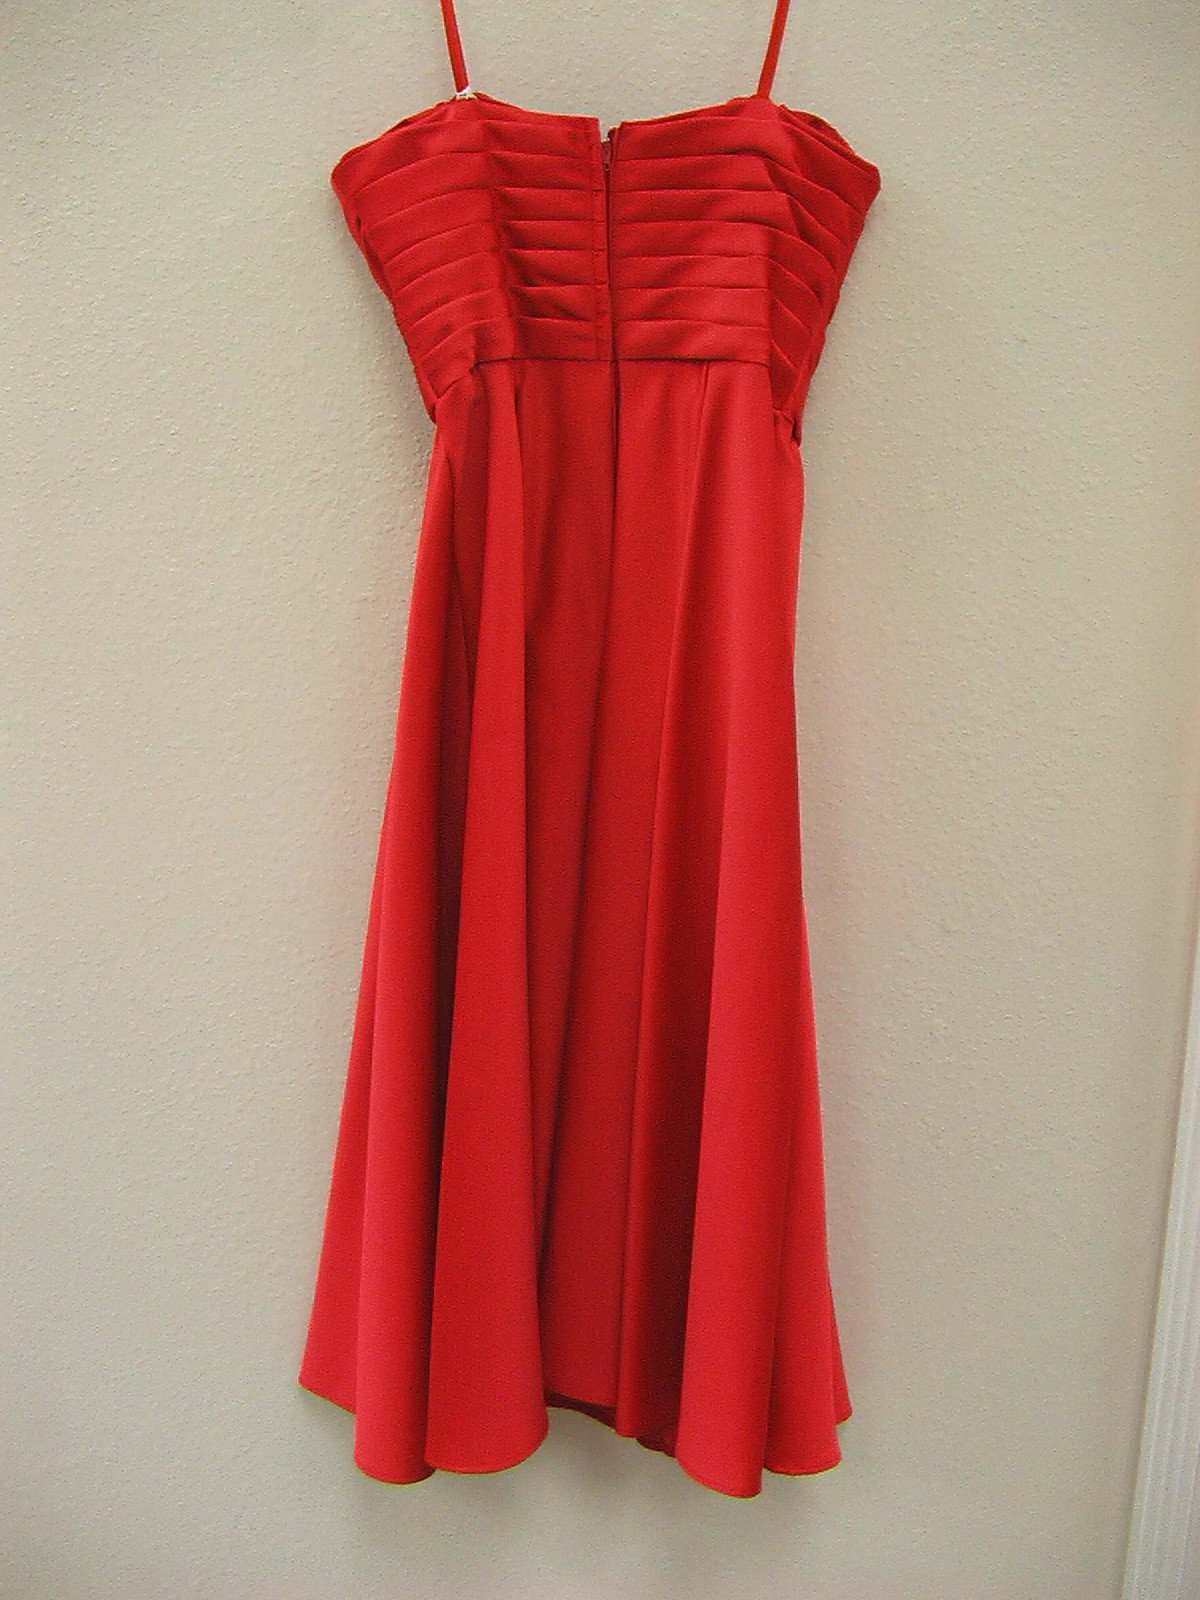 Mori Lee 887 Red size 10 In Stock Bridesmaid Dress - Tom's Bridal